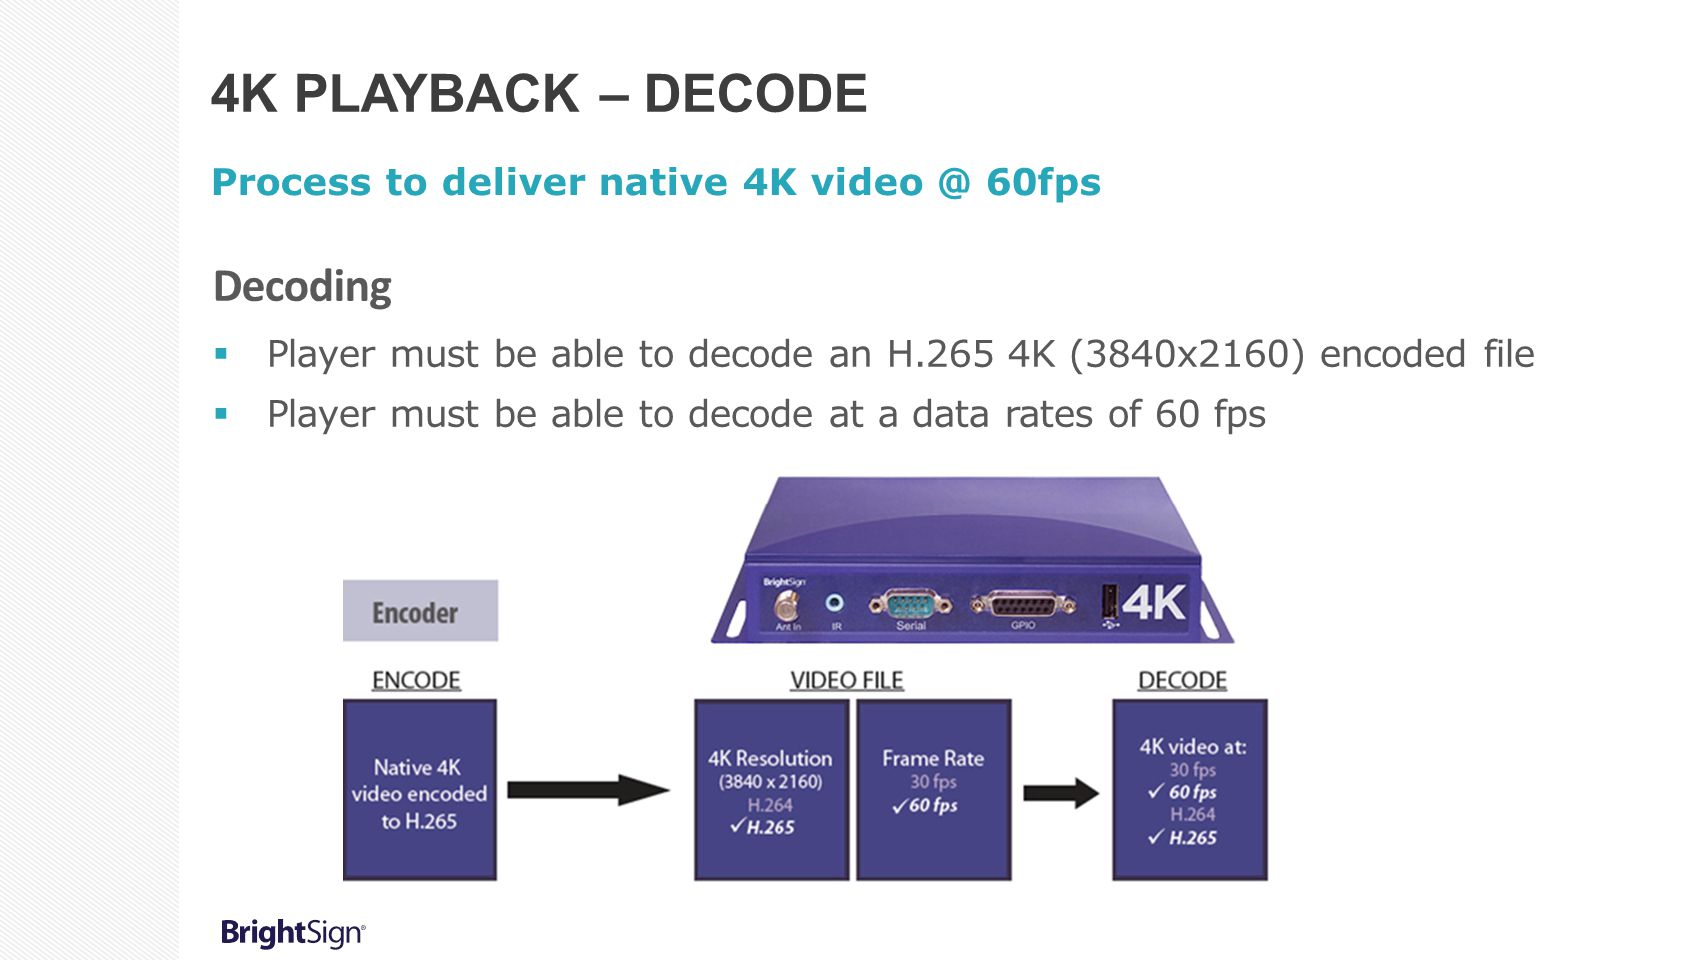 4K PLAYBACK – DECODE Process to deliver native 4K video @ 60fps Decoding  Player must be able to decode an H.265 4K (3840x2160) encoded file  Player must be able to decode at a data rates of 60 fps